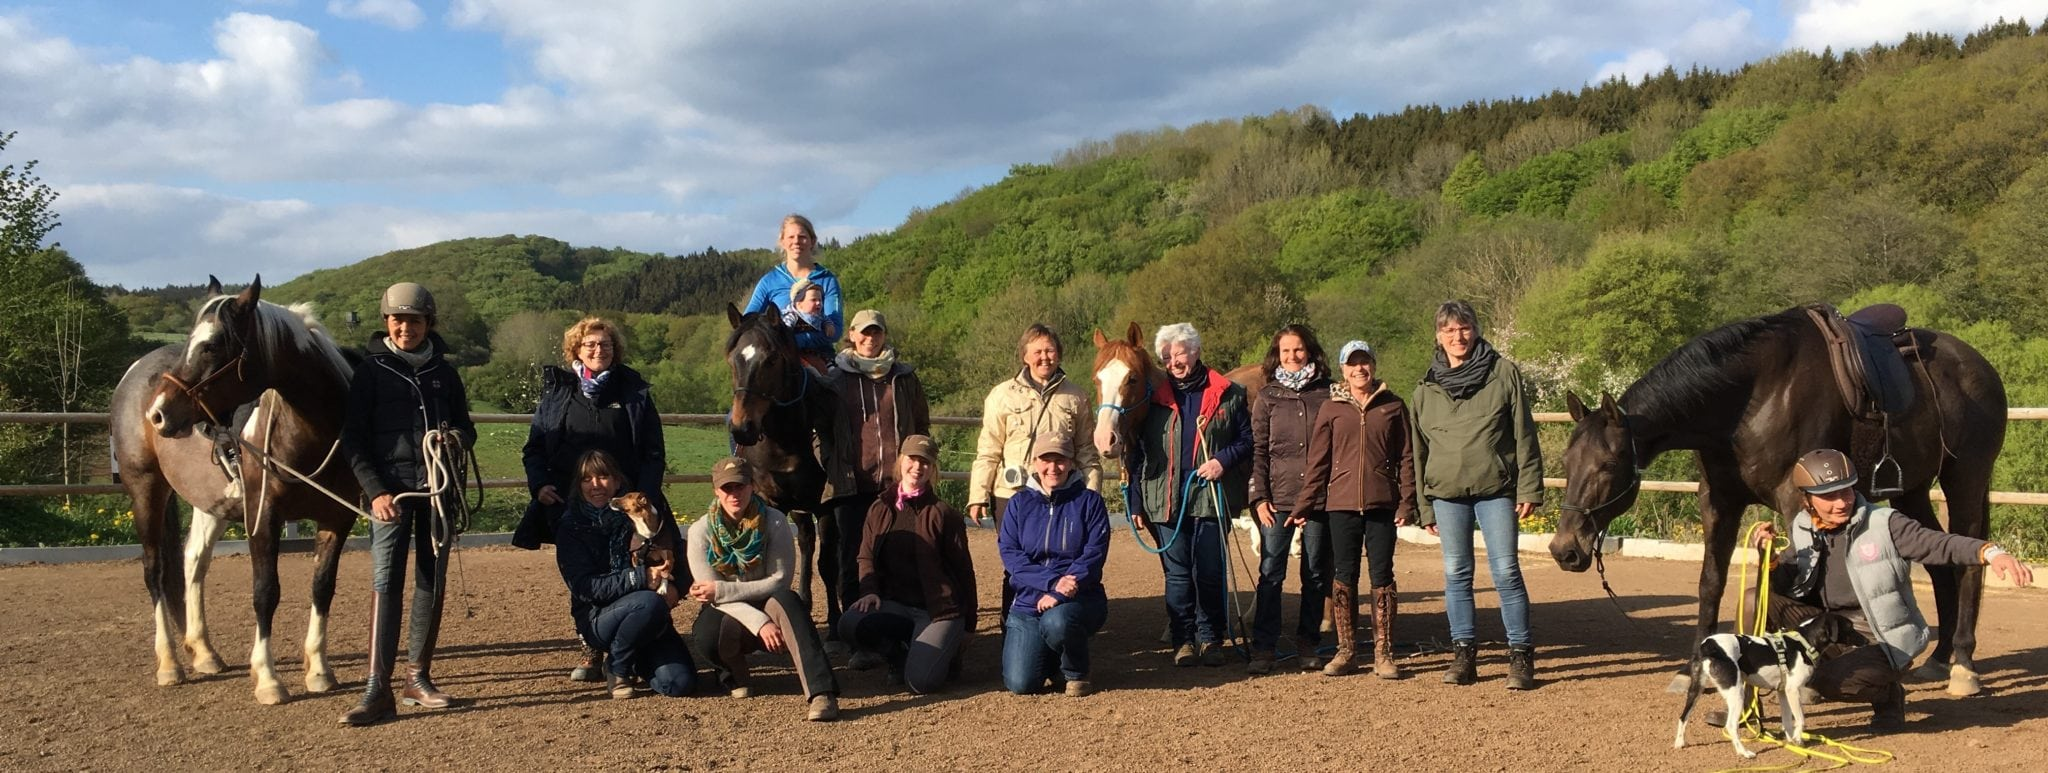 Dressage Naturally Support Course Germany 2018